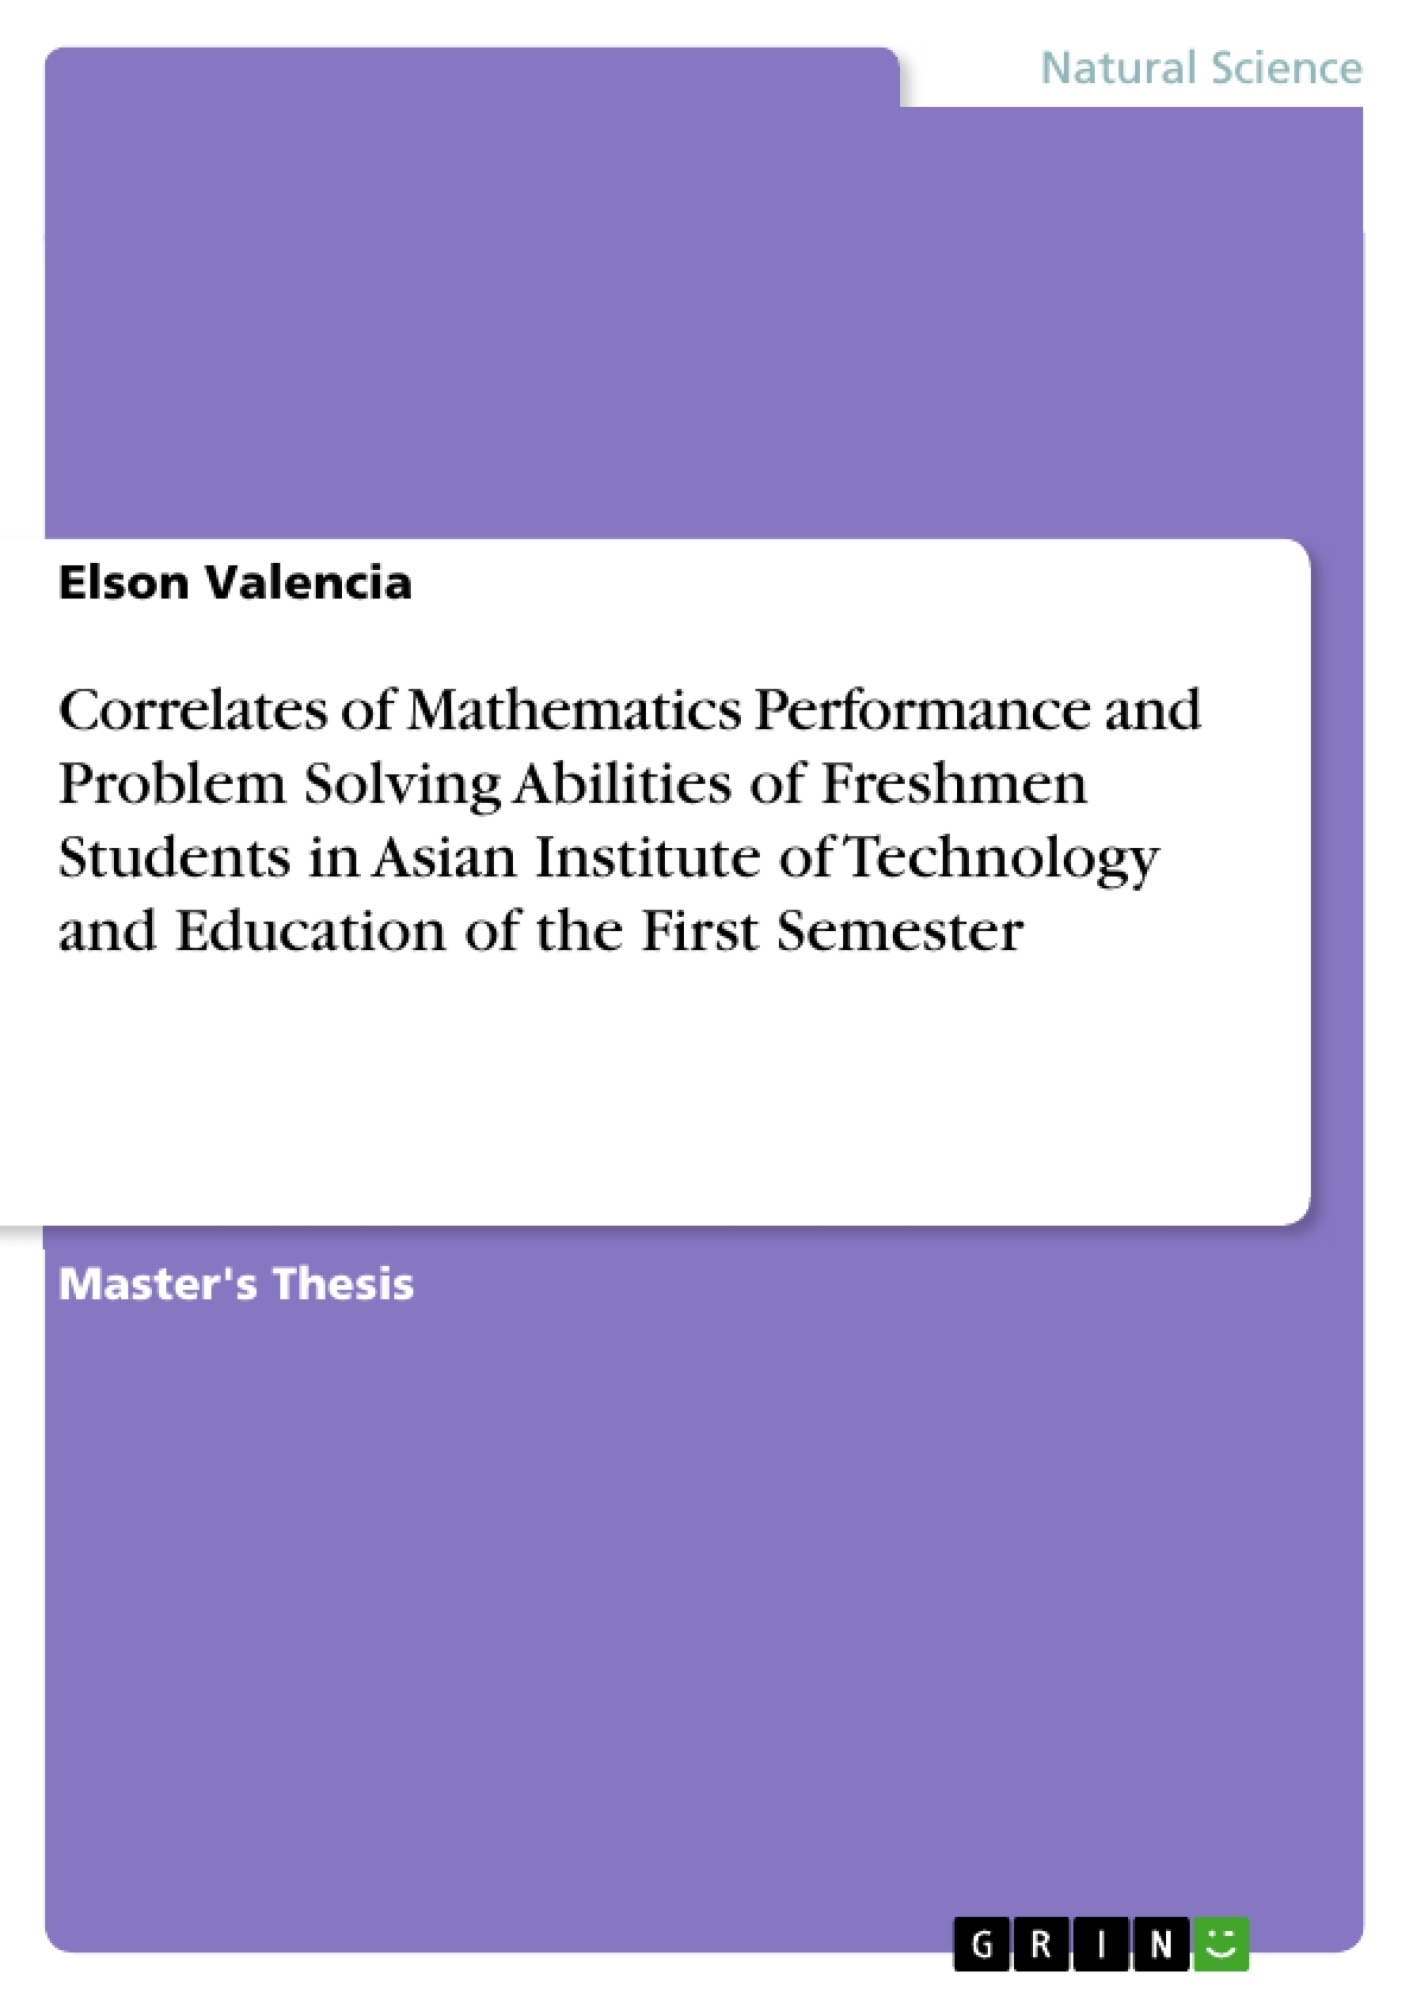 Title: Correlates of Mathematics Performance and Problem Solving Abilities of Freshmen Students in Asian Institute of Technology and Education of the First Semester